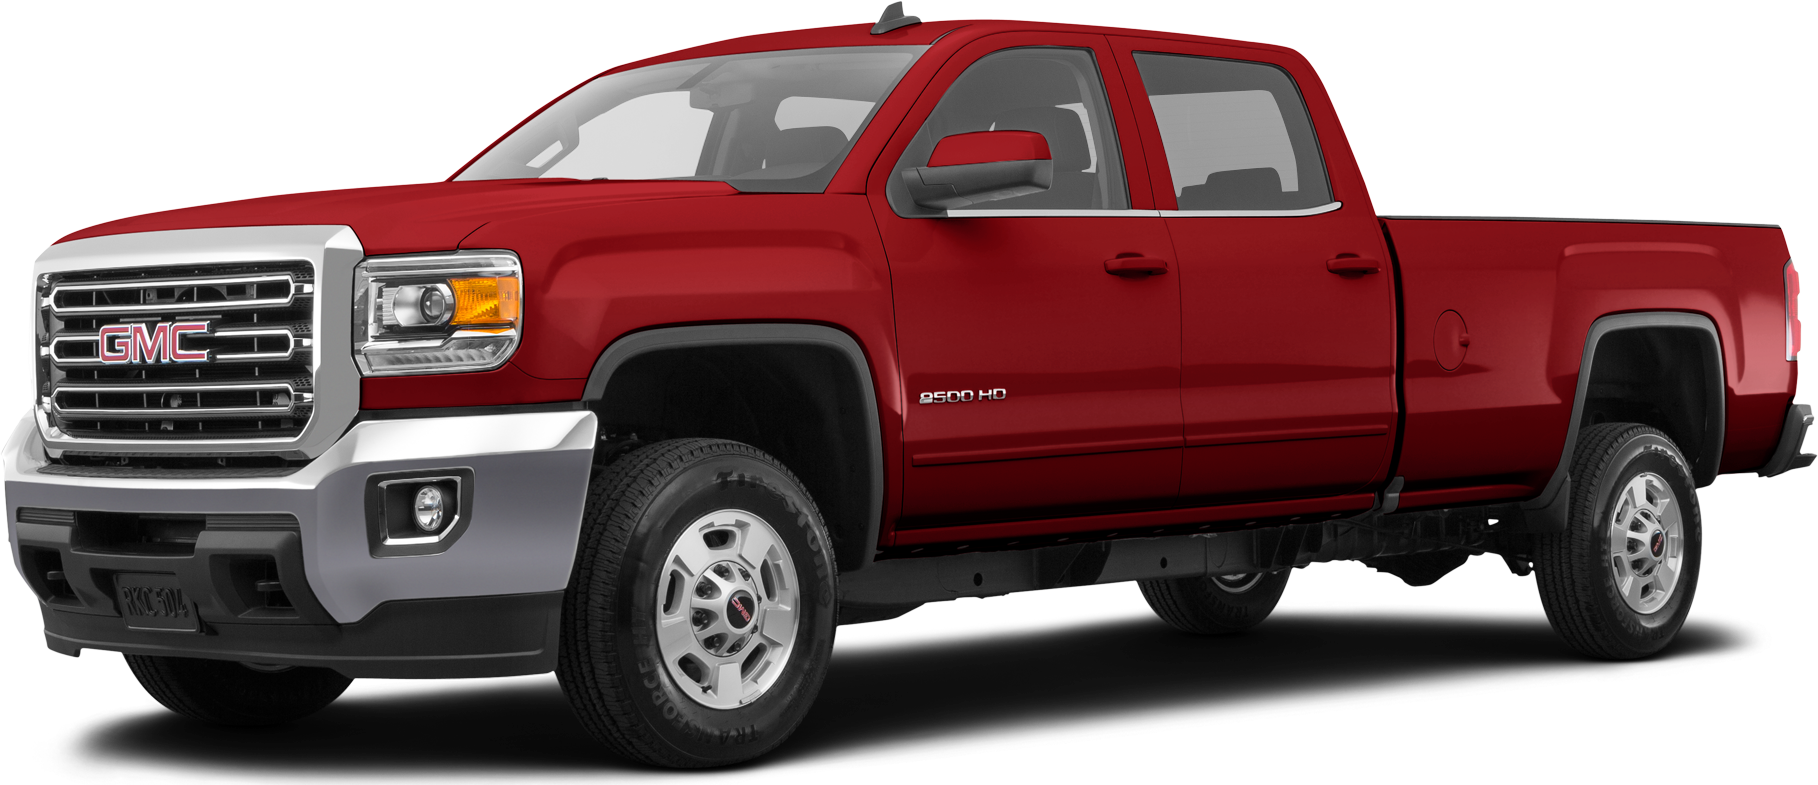 Used 2016 Gmc Sierra 1500 Values Cars For Sale Kelley Blue Book